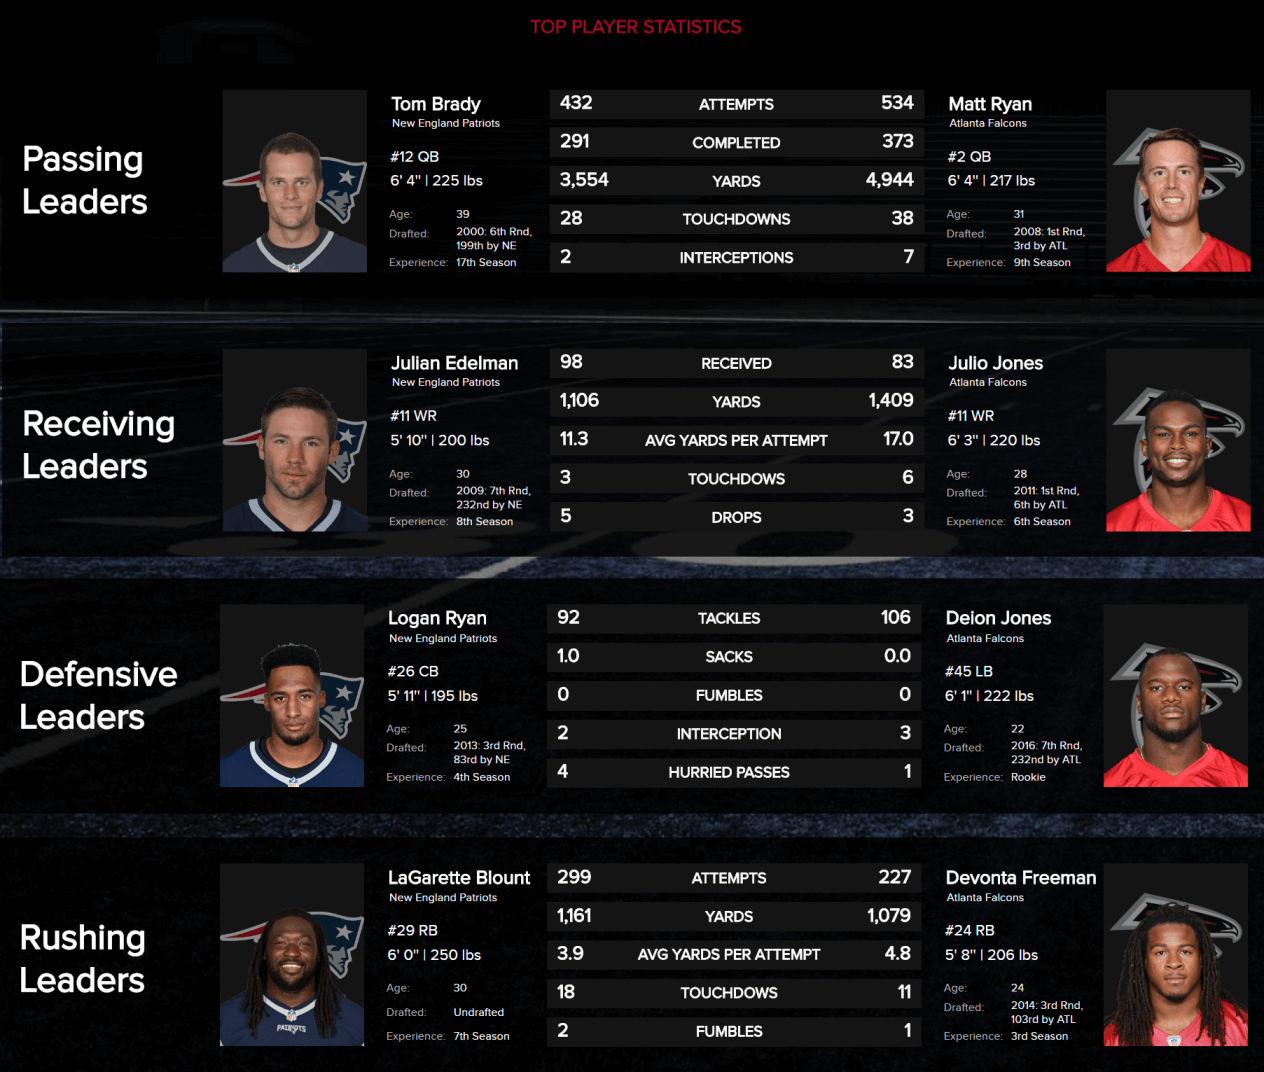 comparison of the top player statistics of the super bowl 2017 for passing leaders, receiving leaders, defensive leaders and rushing leaders of the new england patriots and atlanta falcons